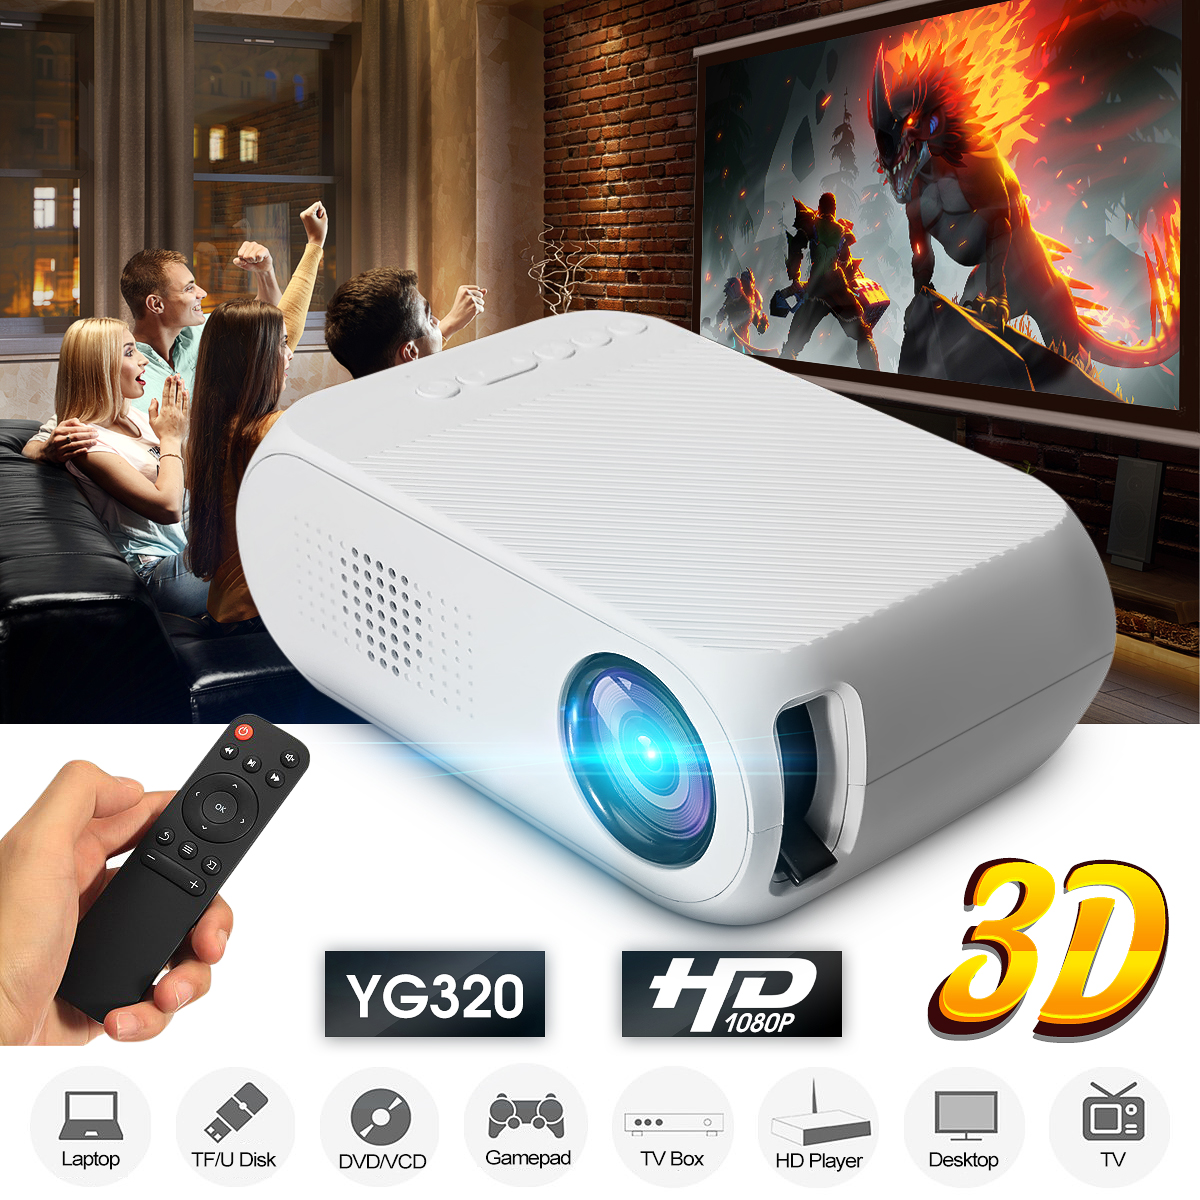 YG-320 Mini LCD LED 1080P HD Projector 400-600 Lumens 320 x 240 Pixels Home Video Theater Media Player Cinema Portable Projector цены онлайн